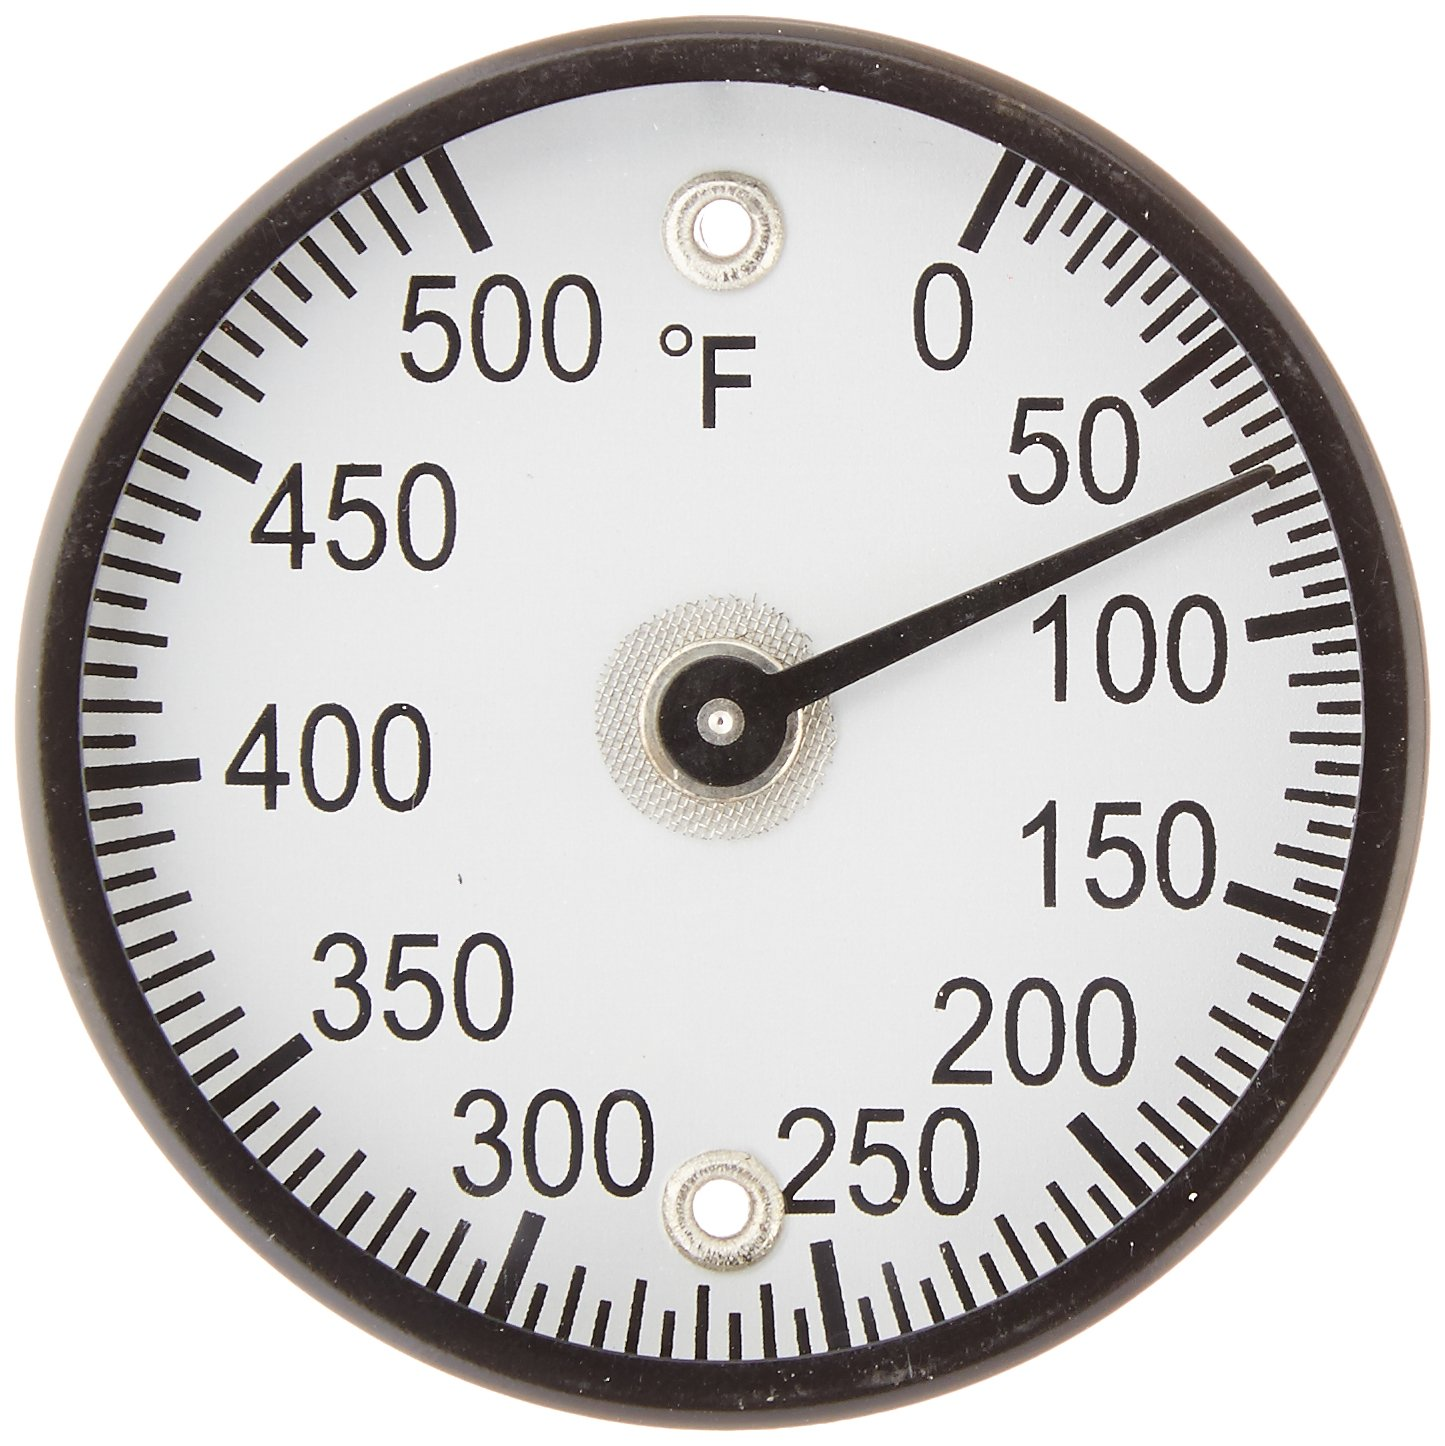 PIC Gauge B2MS-Q 2'' Dial Size, 50/500°F, Surface Mount, Magnetic Connection, Black Steel Case Surface Mount Thermometer by PIC Gauges